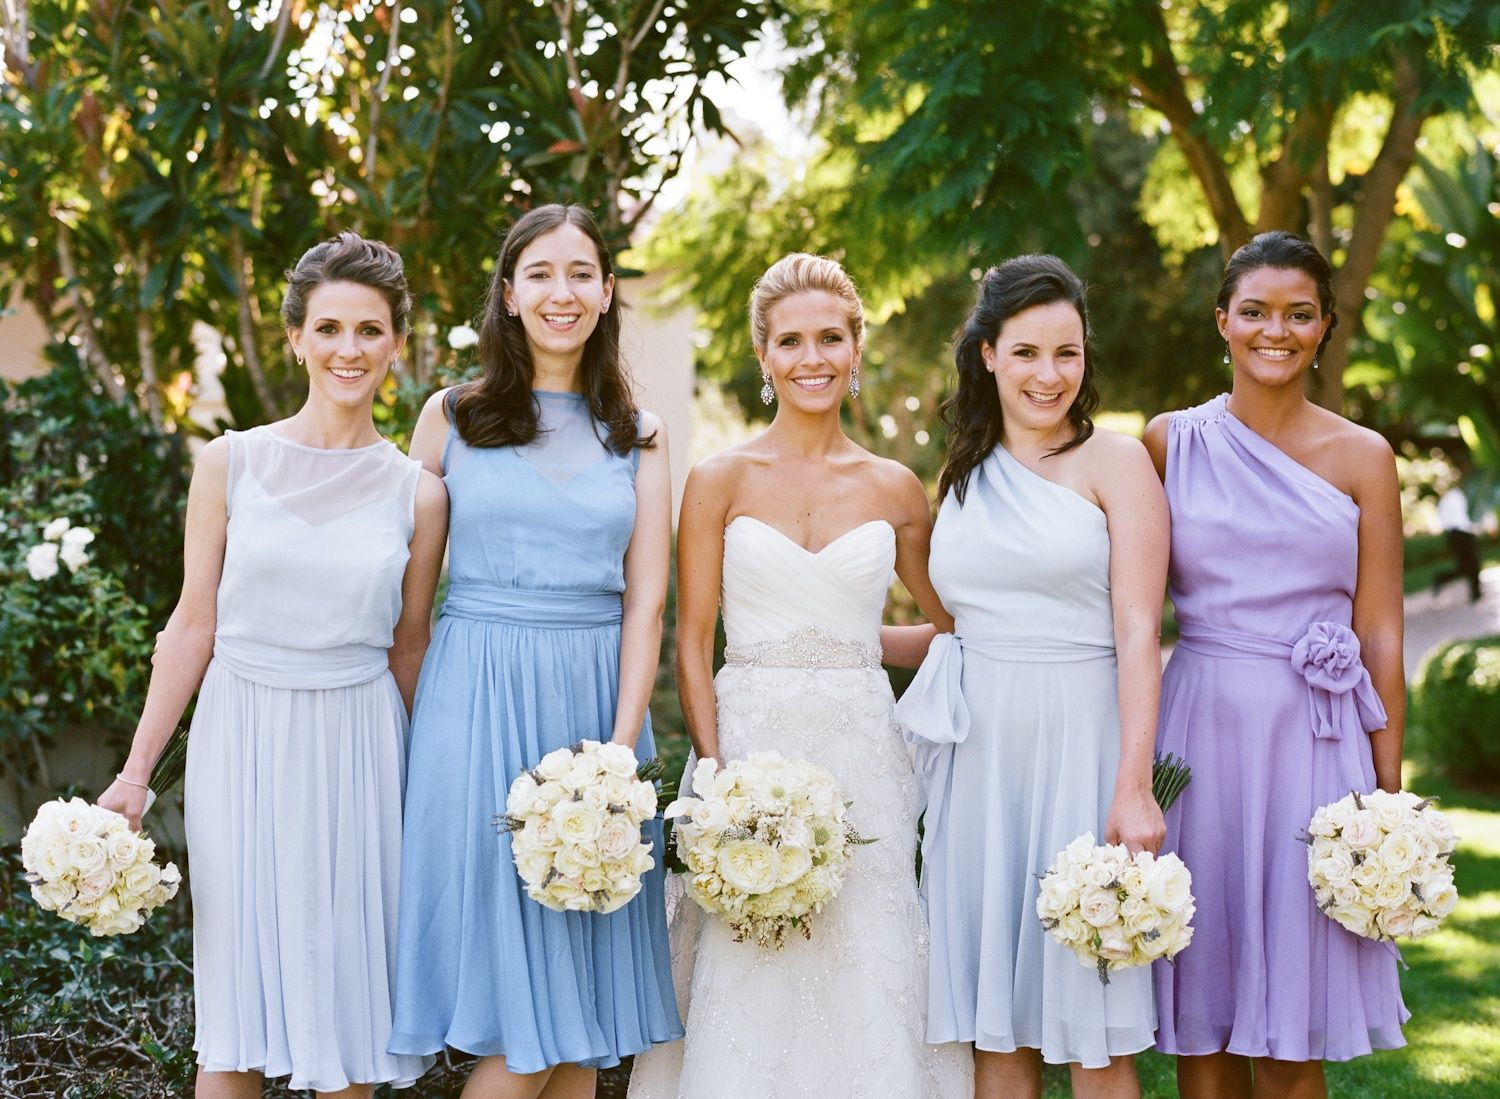 Wedding etiquette wedding weddings and wedding bridesmaid dresses